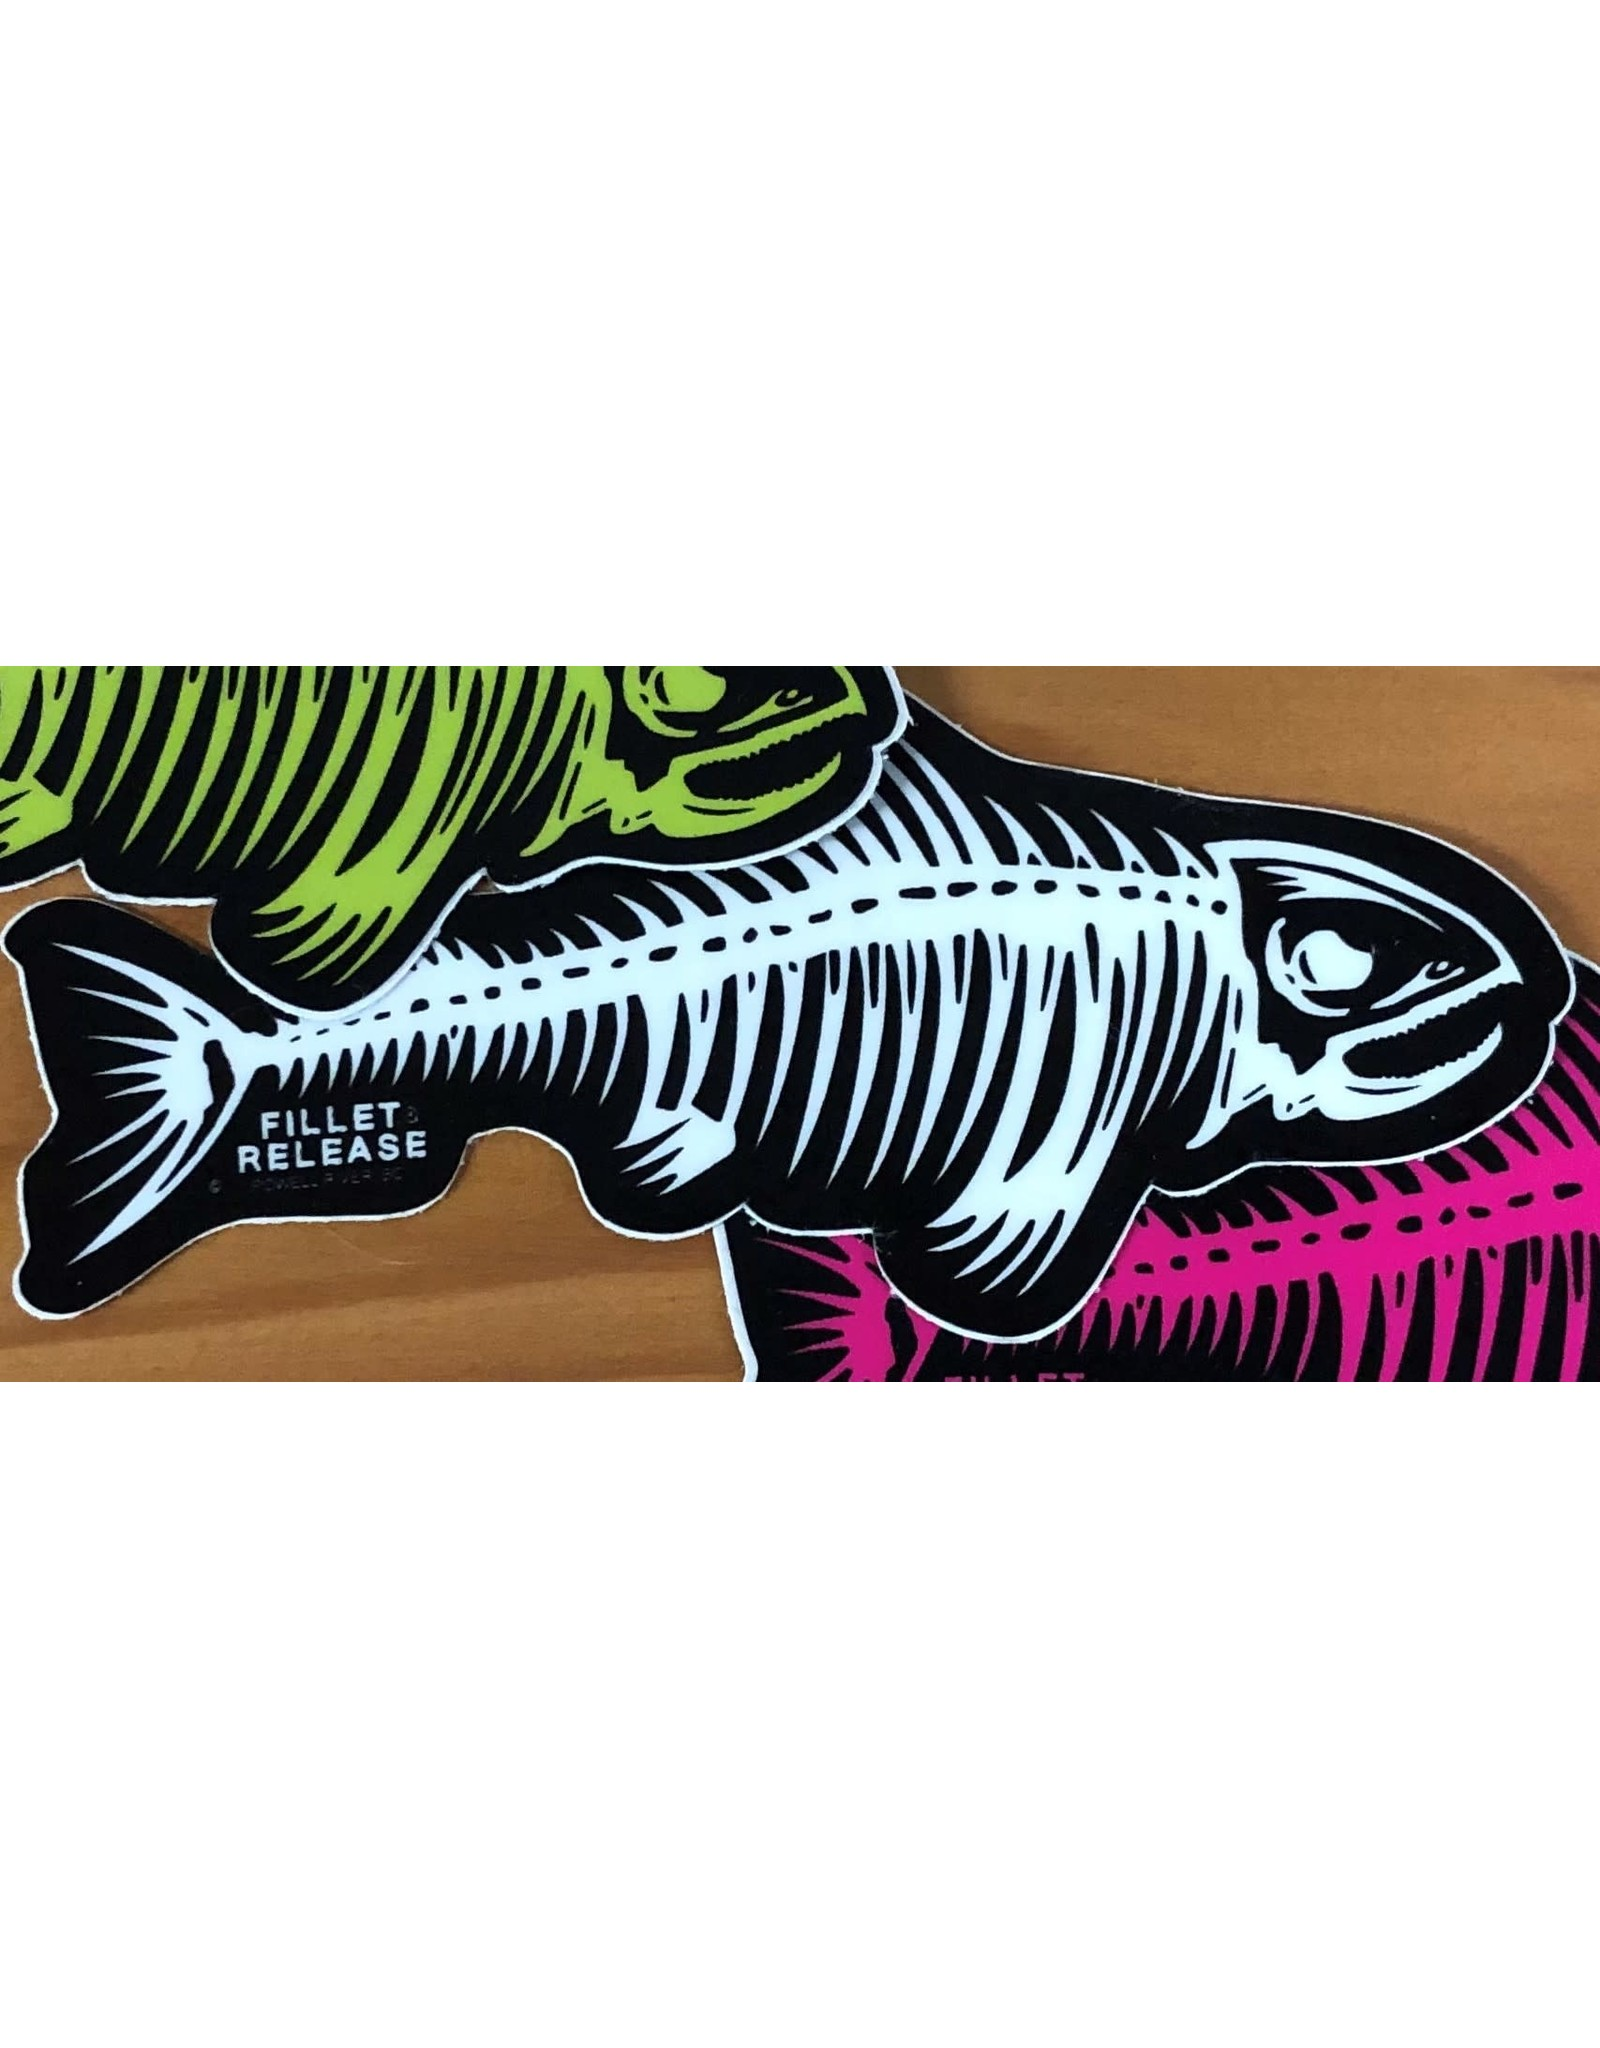 PRO SMALL FILLET & RELEASE FISH DECAL